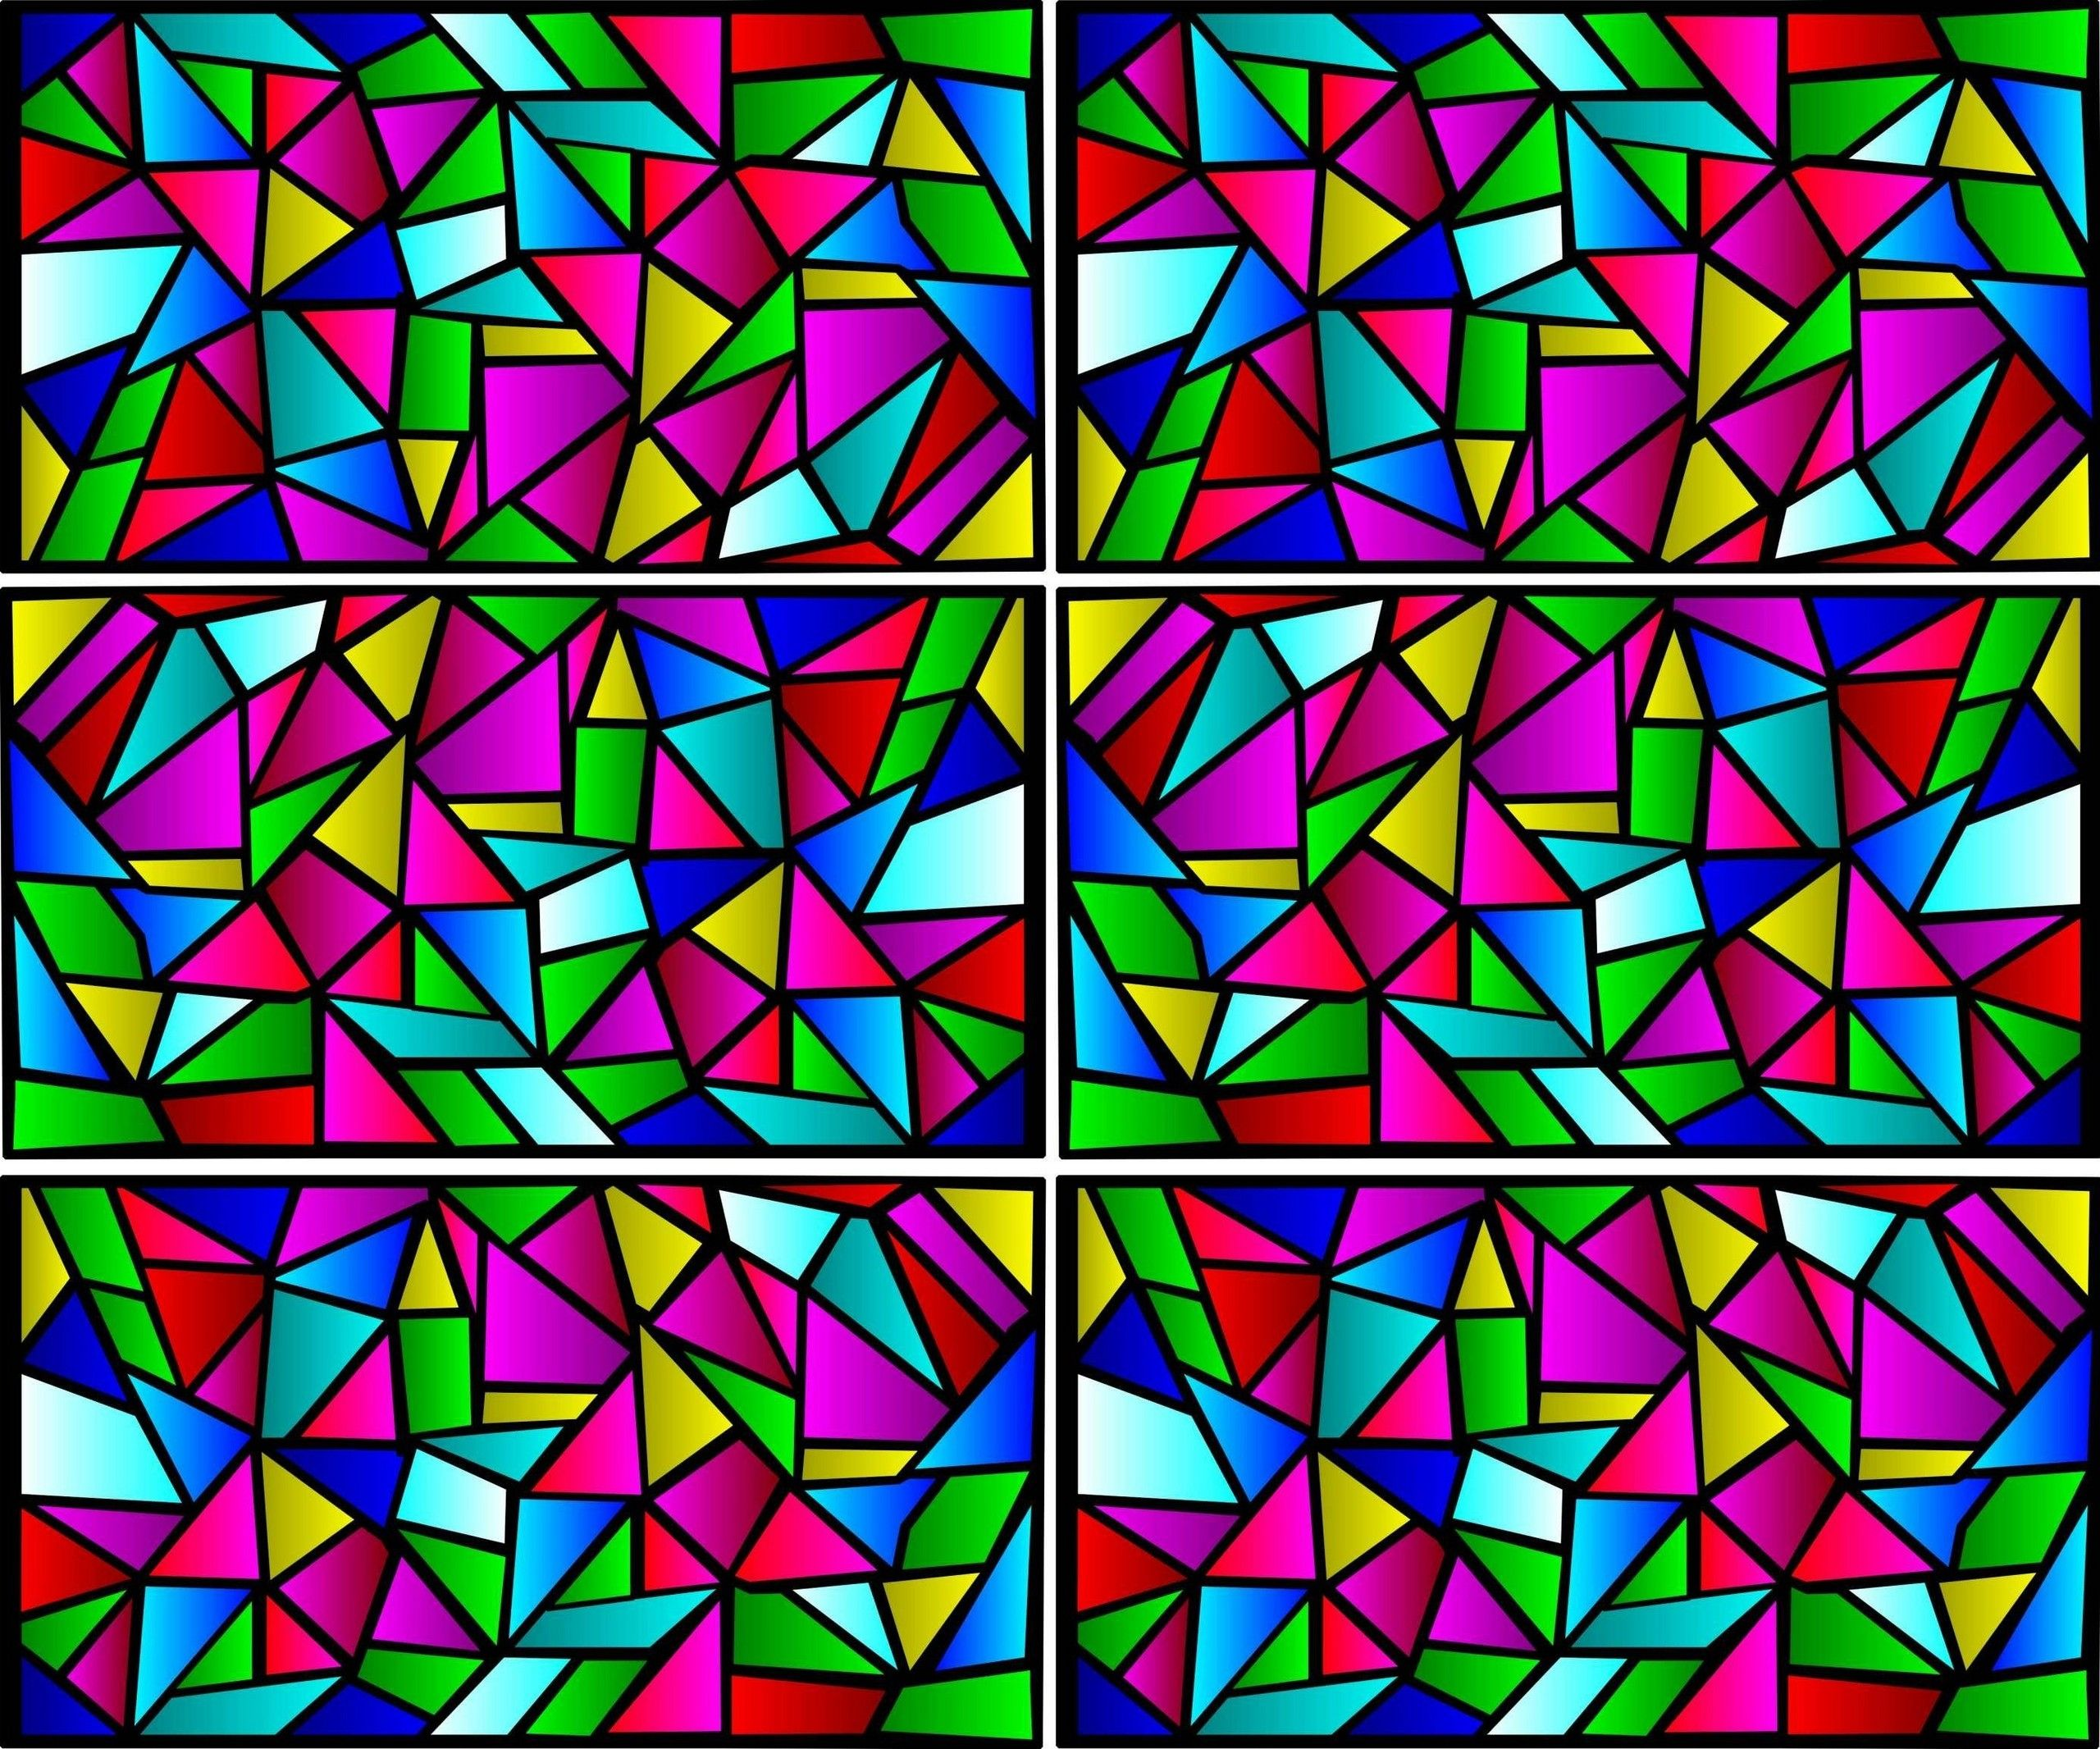 Stained Glass Hd Wallpaper Background Image Stain Glass Window Art Glass Window Art Stained Glass Church